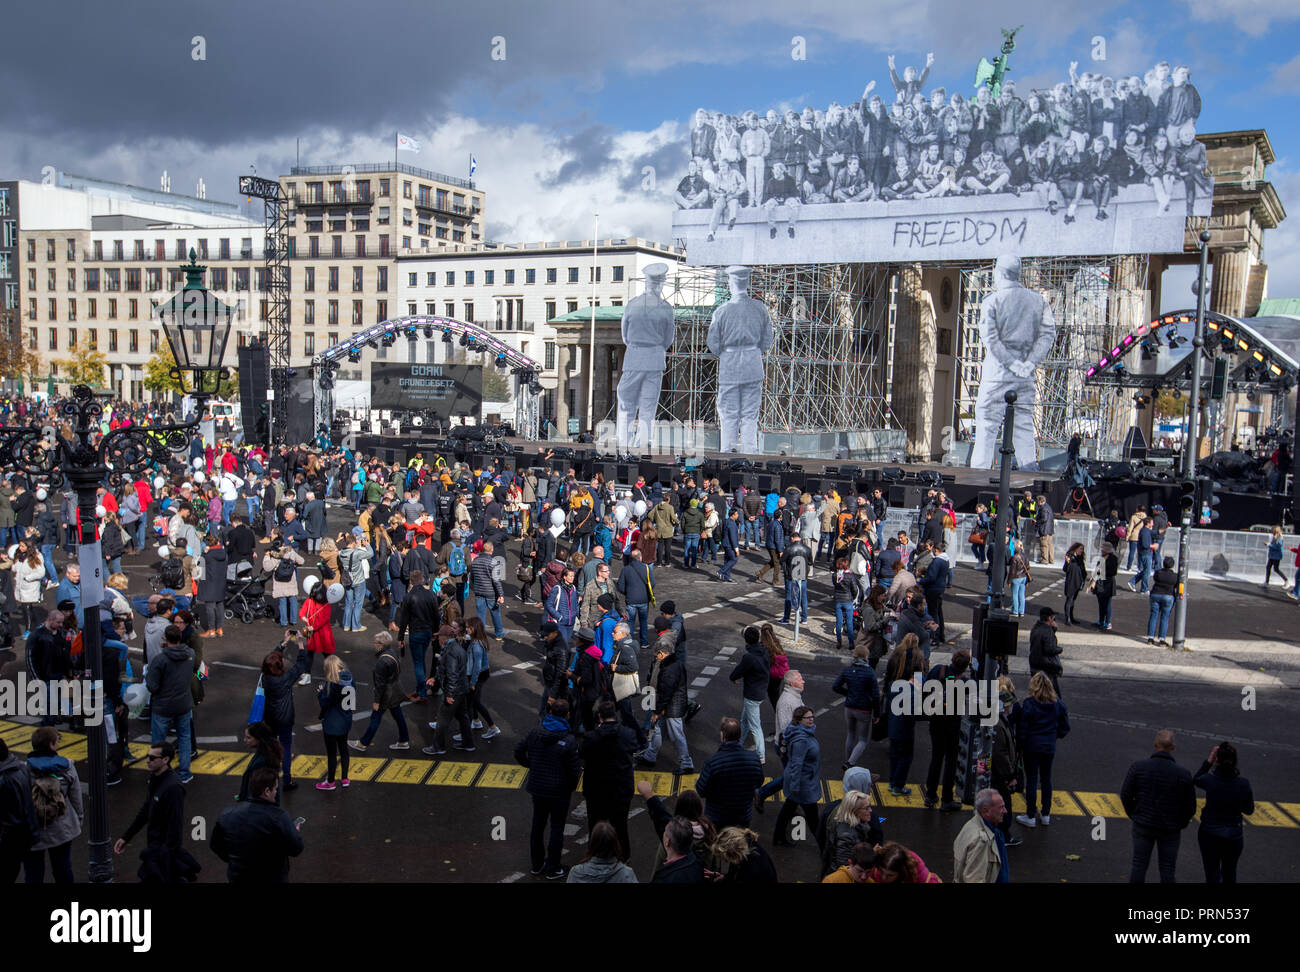 03 October 2018, Berlin: Visitors to the Citizens' Festival on German Unity Day pass by the Brandenburg Gate with historical photos of the day the Wall was opened. The motto of the three-day festival is 'Only with you'. Photo: Jens Büttner/dpa-Zentralbild/dpa - Stock Image